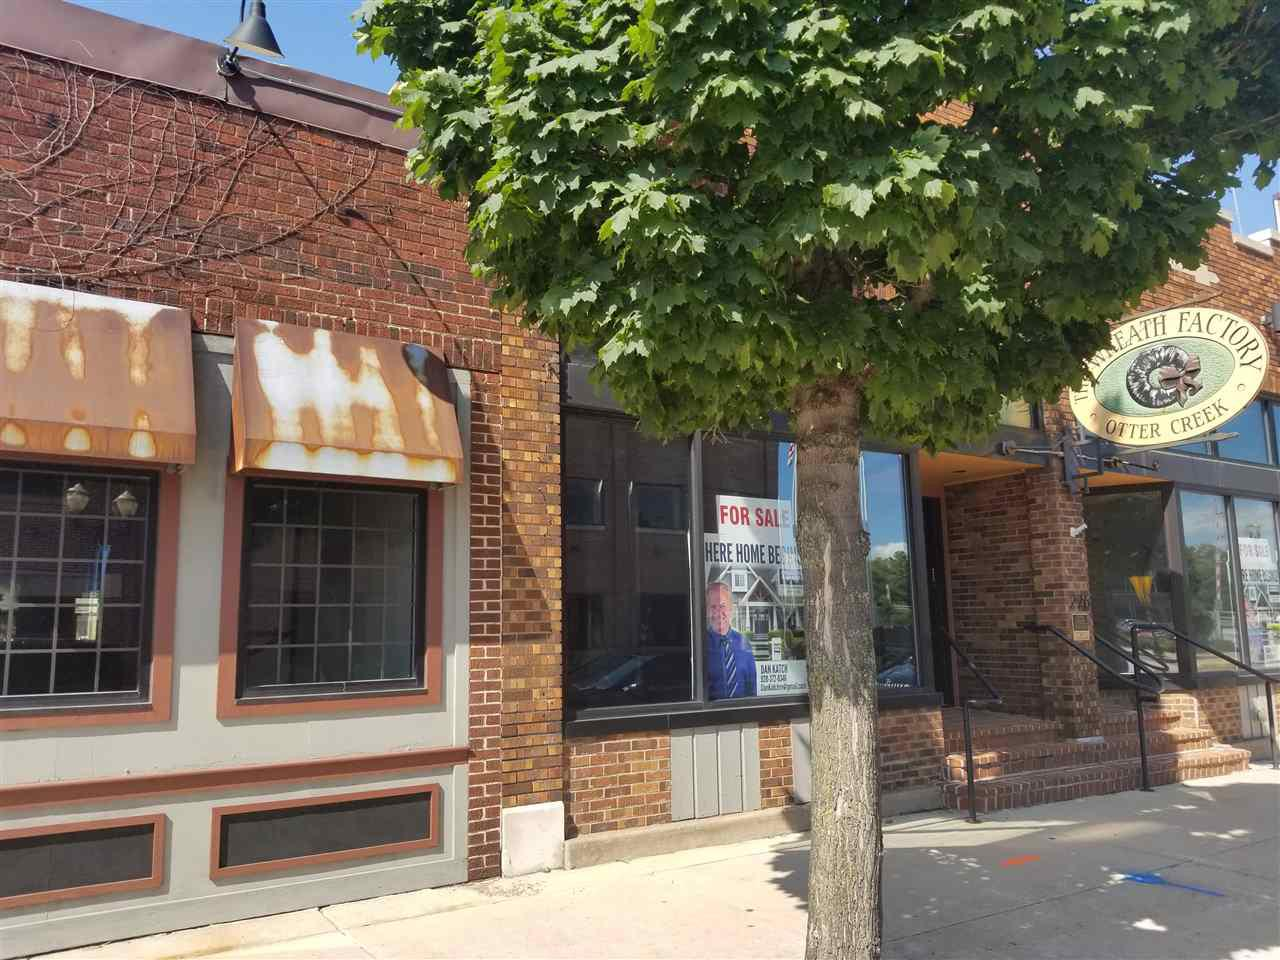 ( $10,000 cash at closing incentive for an accepted offer before 2/28/2020.)  Formally The Wreath Factory. Located in Menasha's Historic Revitalization Downtown Area. This property is a combination of 2 buildings 222 and 226 Main Street in Menasha. Includes private walk through from public parking on Broad to Main Street. Walk-through is gated with brick courtyard. Updates include Rubber roof, Windows, Brick Courtyard. Electrical and more. Full basement. Buildings can be separated if desired. Brick Courtyard has endless Potential. Get on board with the new Menasha Downtown Business Train.